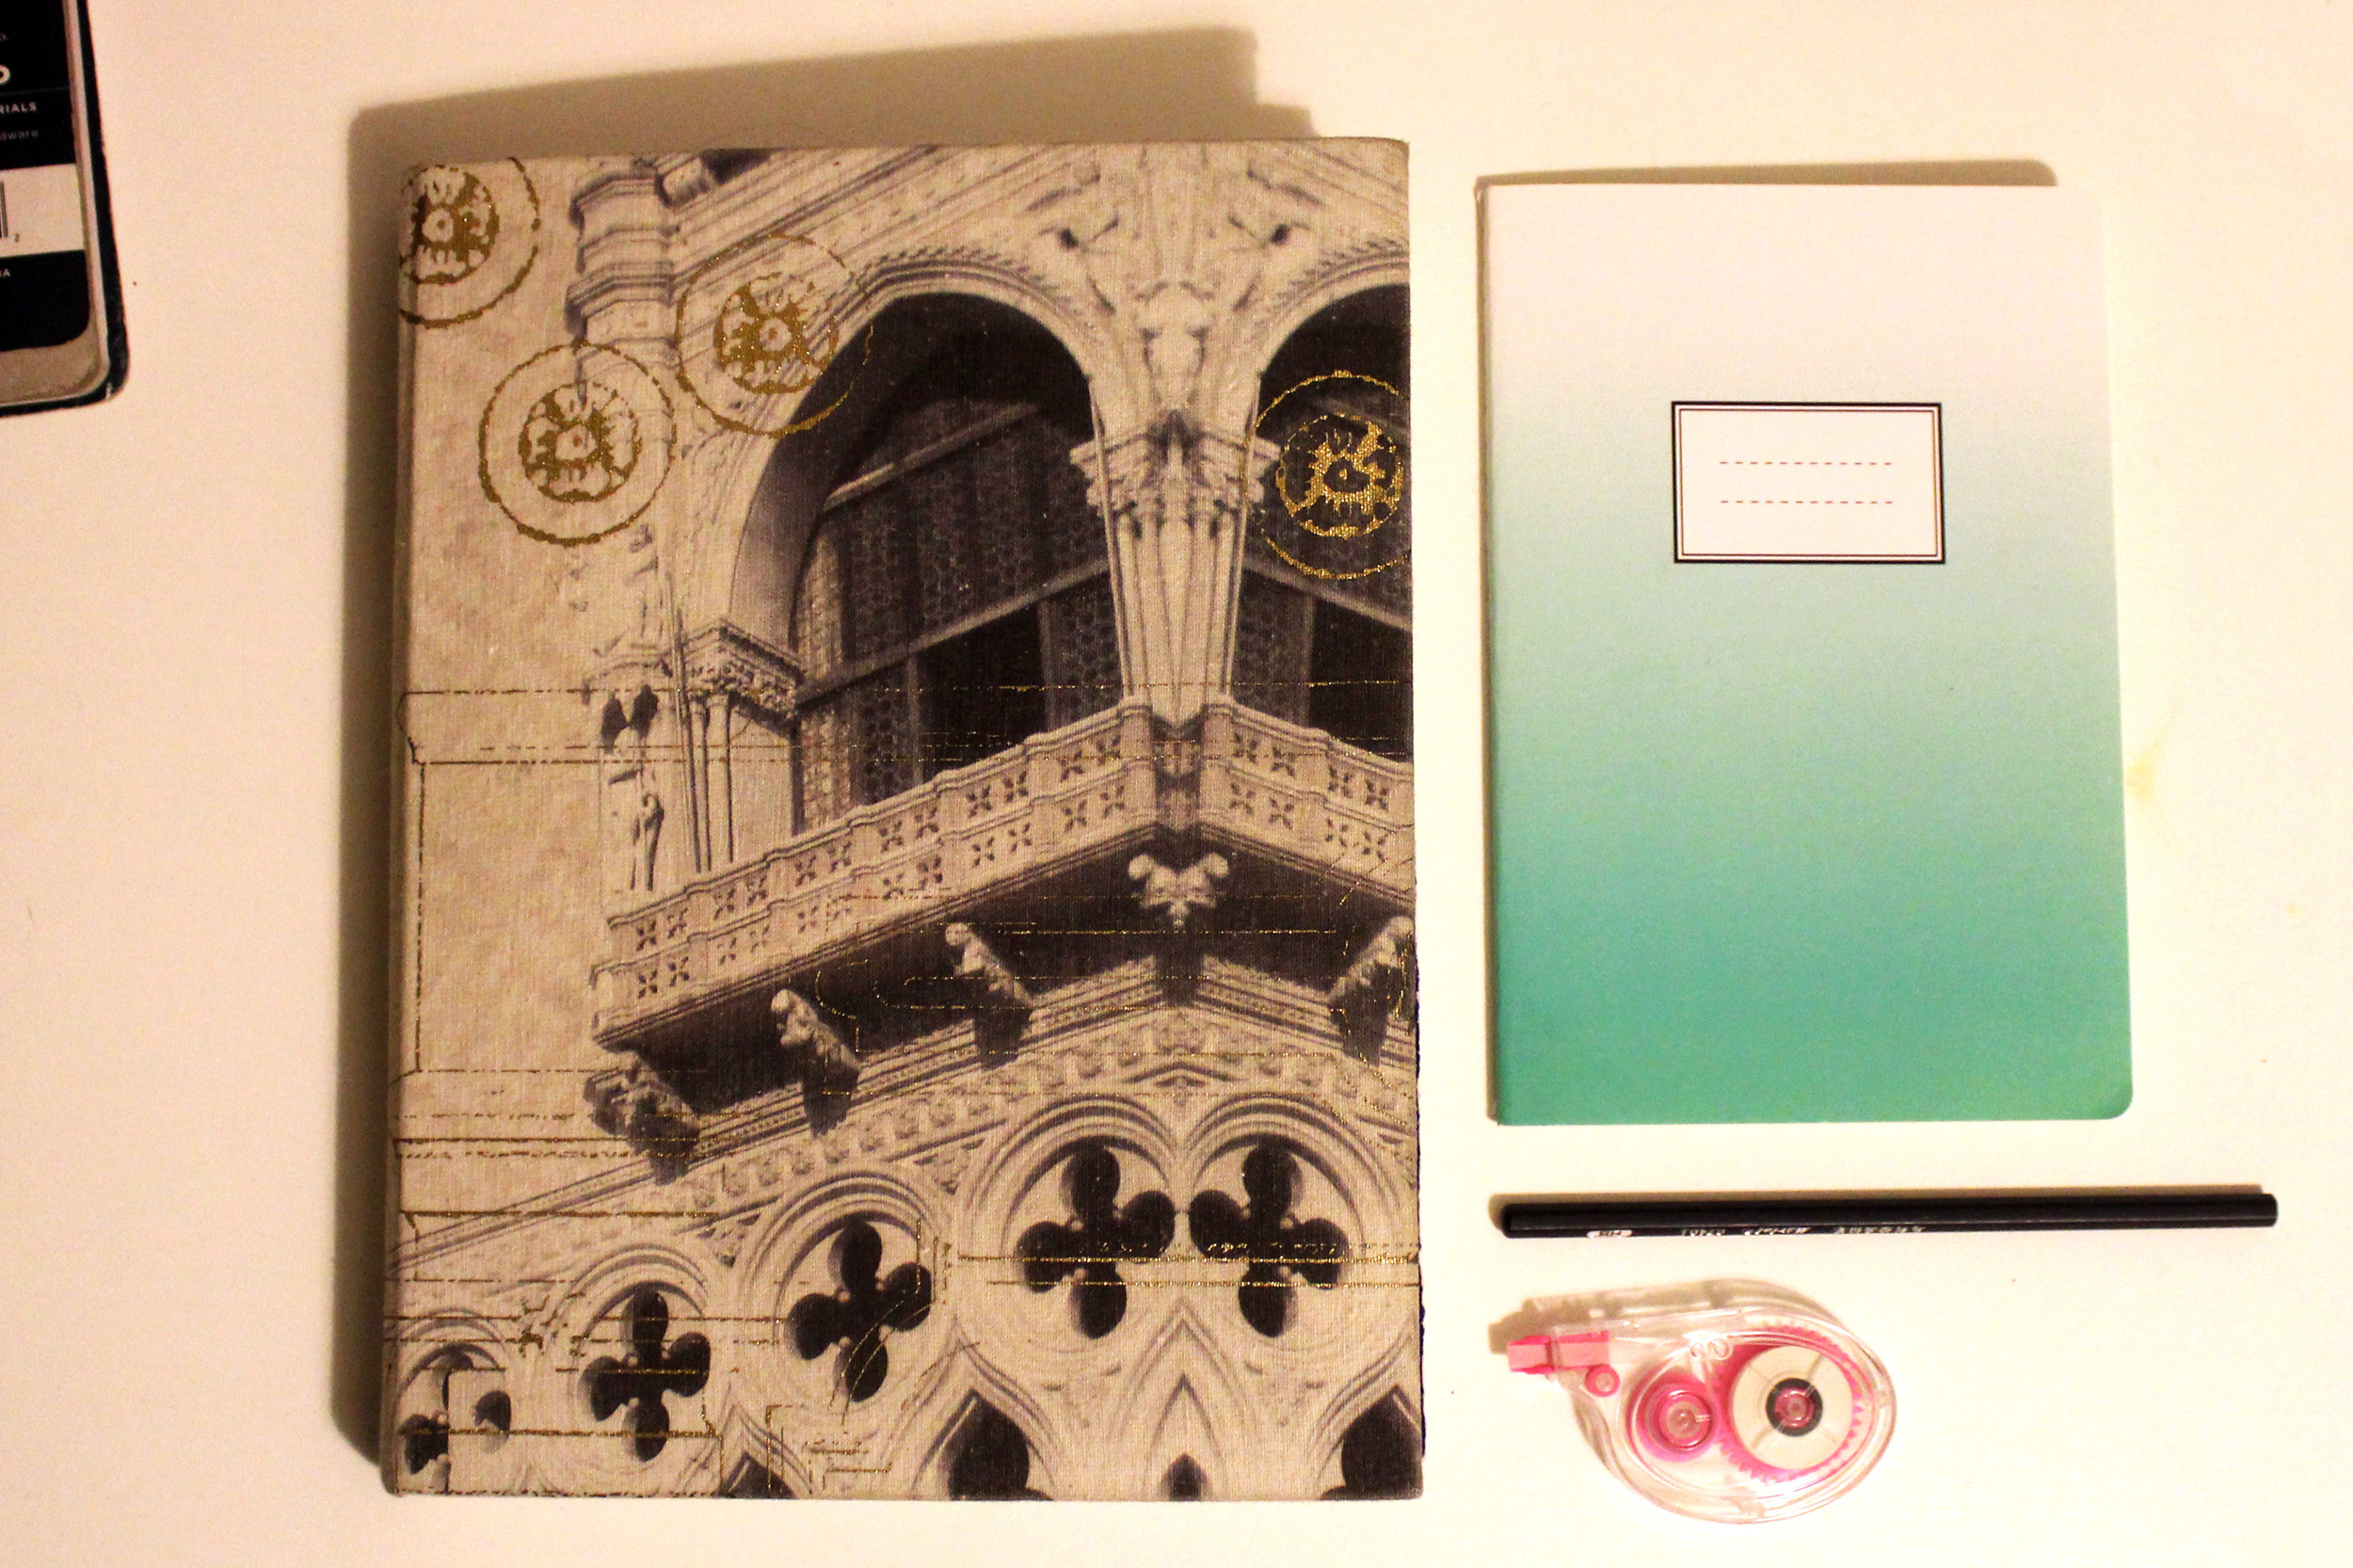 Sold out, but I also love these pretty travel notebook by Christian Lacroix:  Paris  //  New York  //  Rio de Janiero